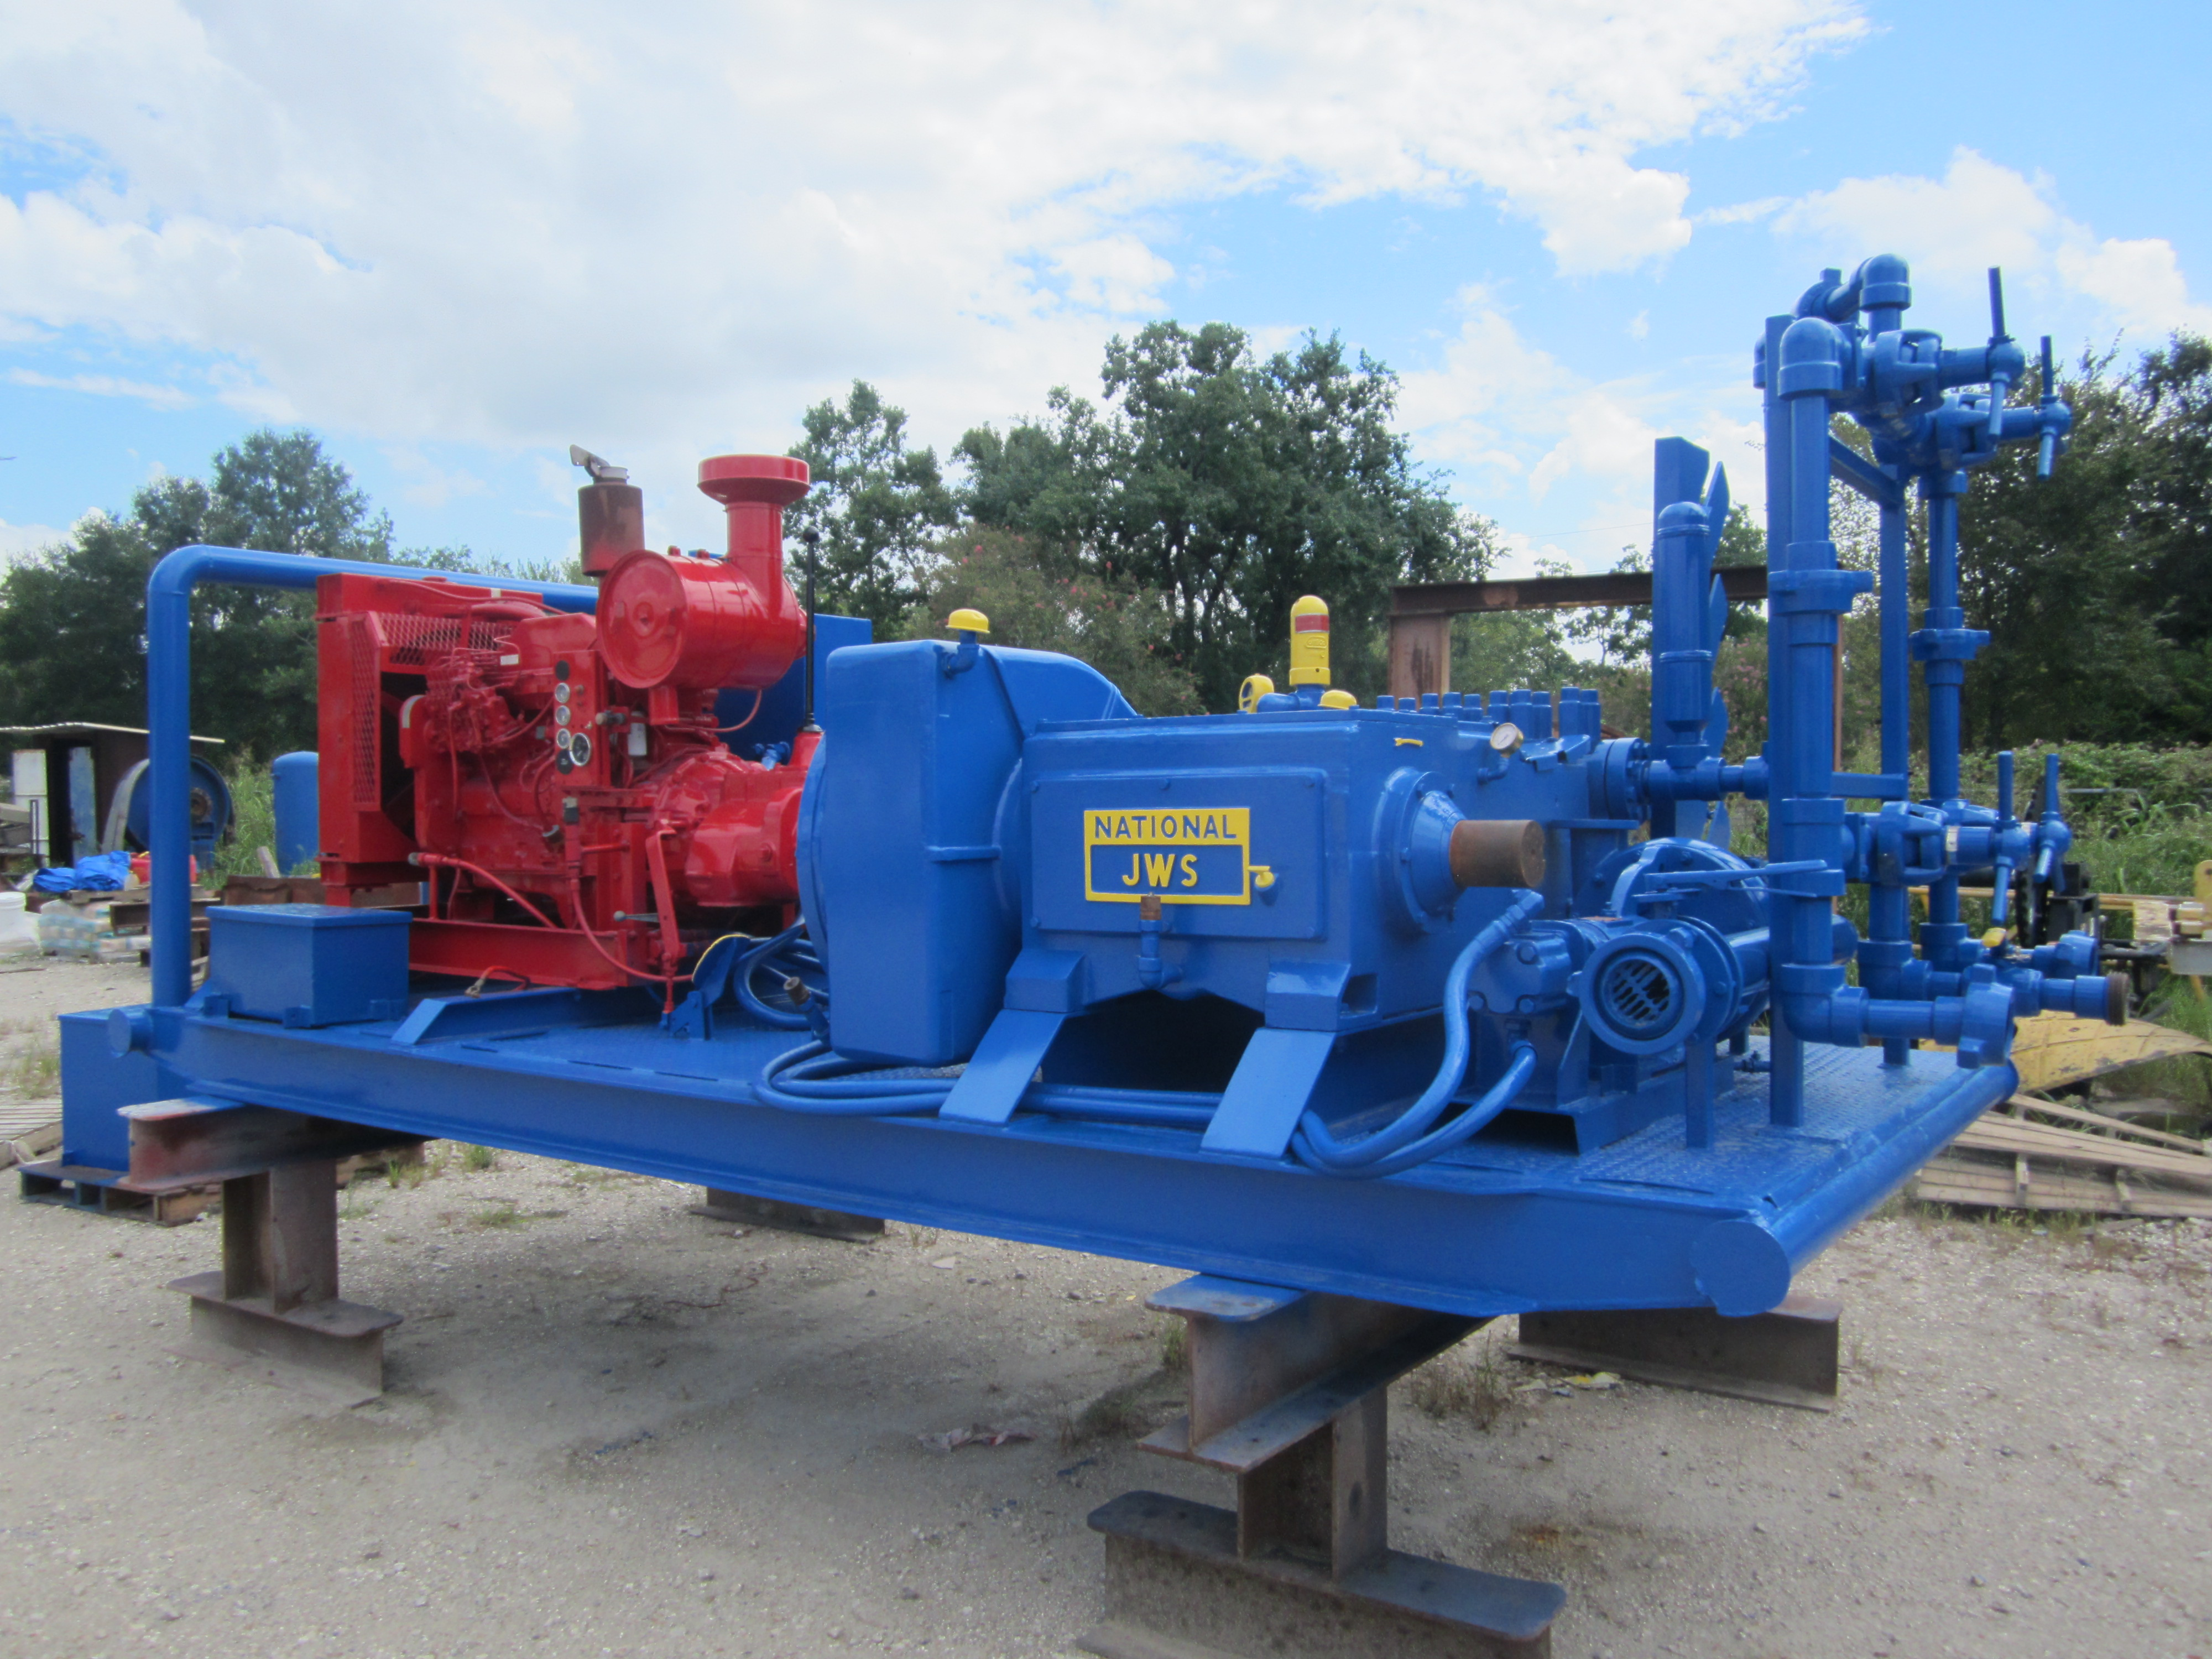 National JWS 340 Available Drilling Equipment